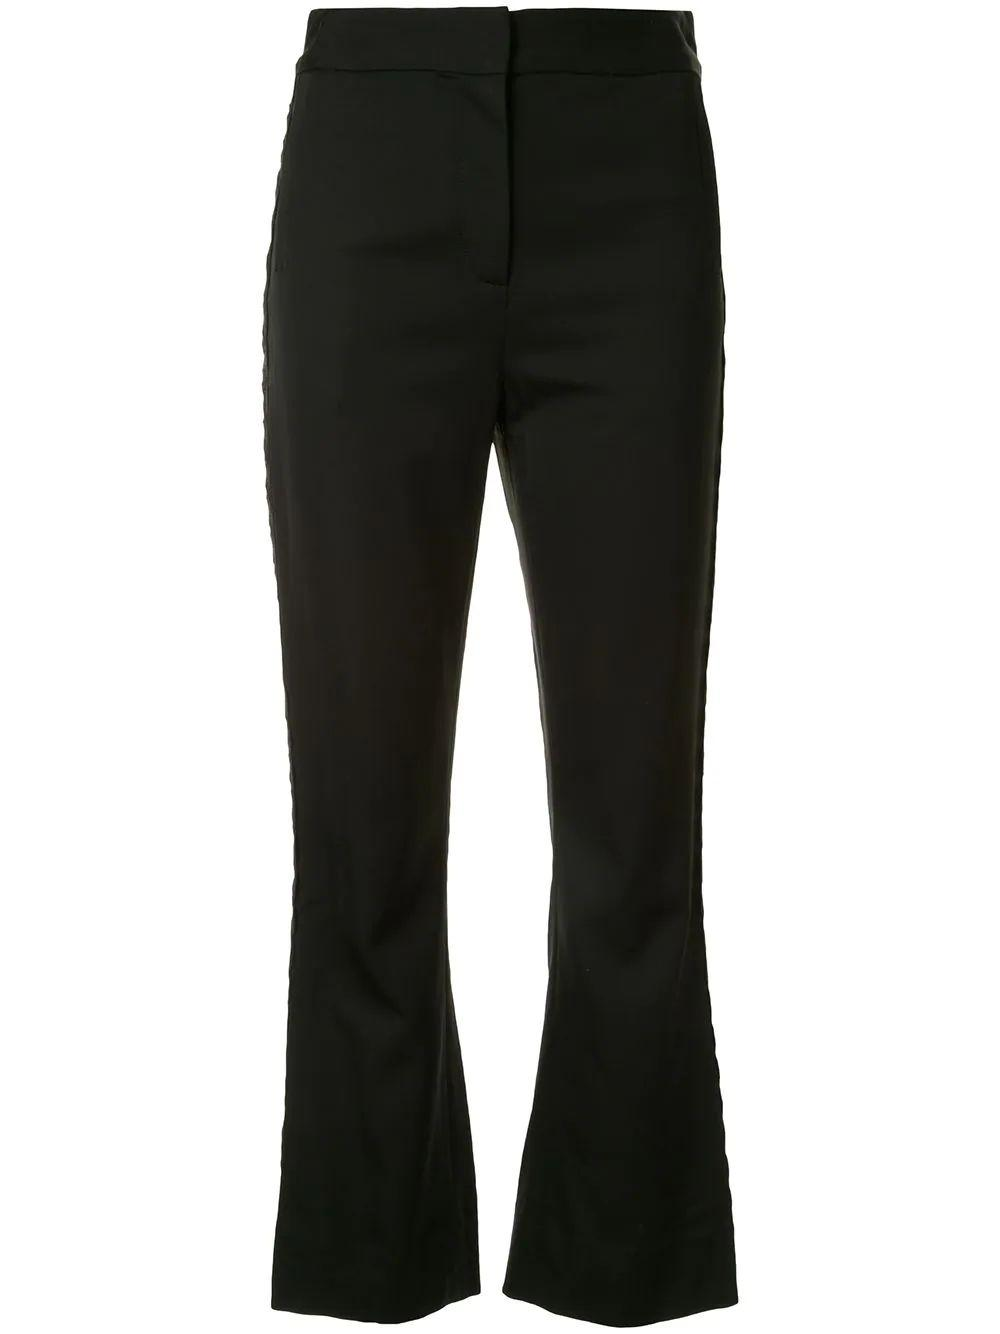 Embroidered Flare Trouser Item # S20104502